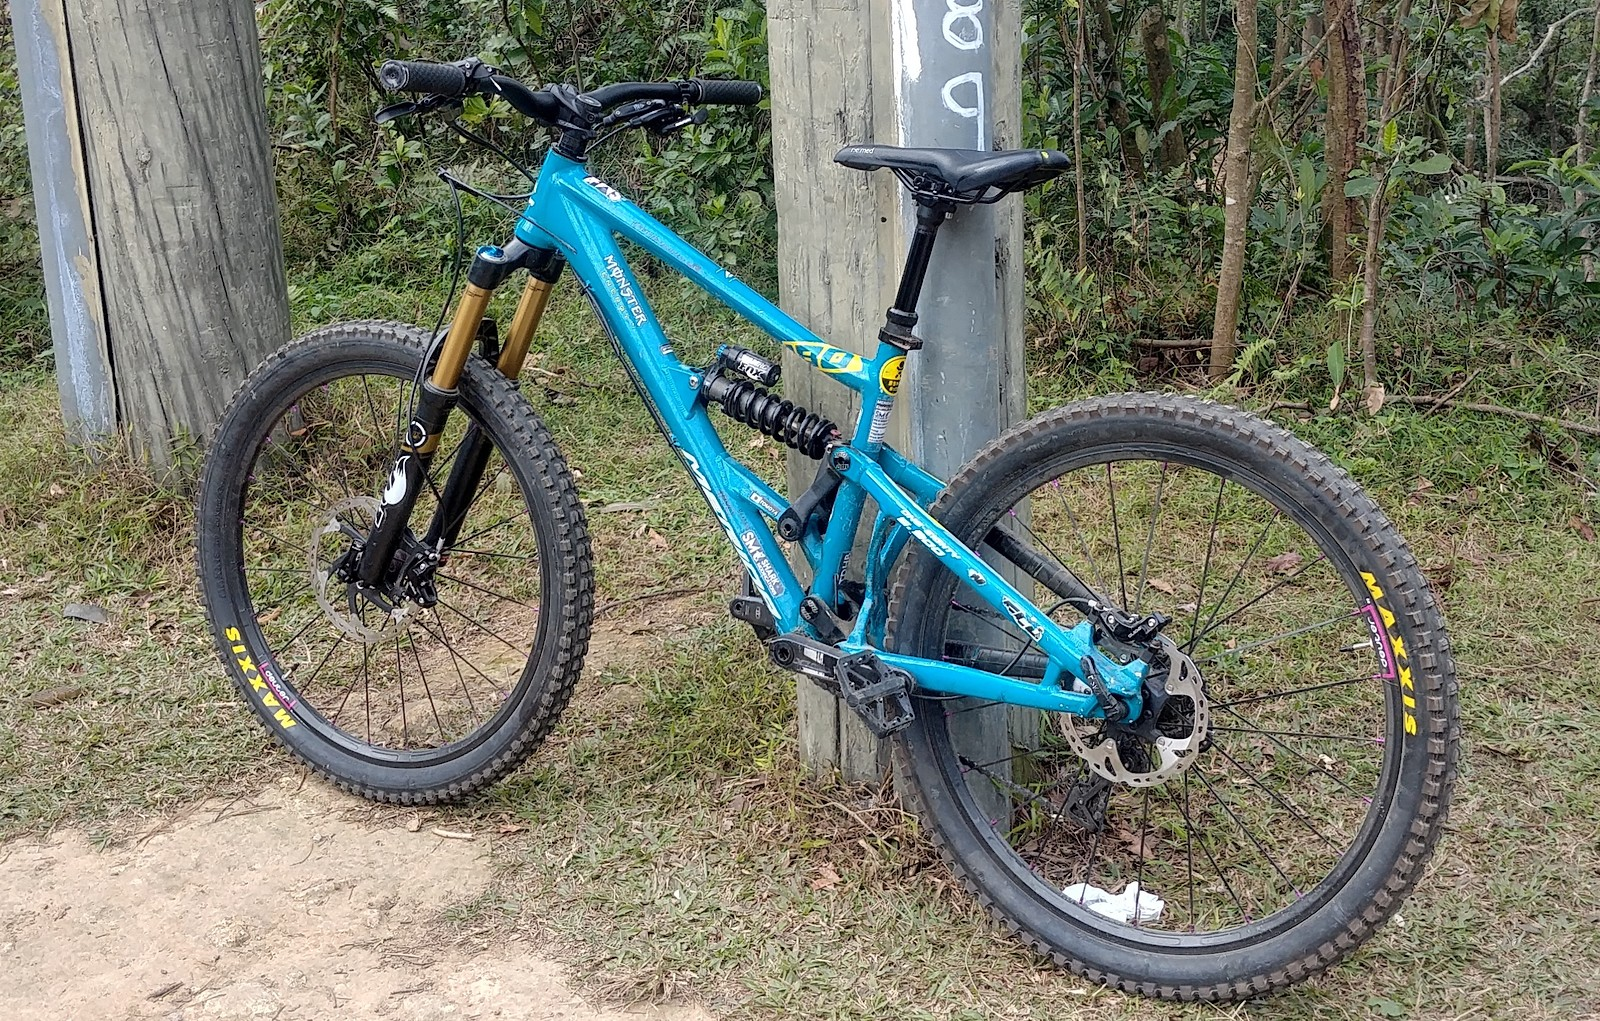 69f1fb81b30 One-Eighty.900 freeride bike based on 600 Downhill bike frame Front 160mm  travel and Rear 180mm travel 26 inch wheels with Maxxis minions ...